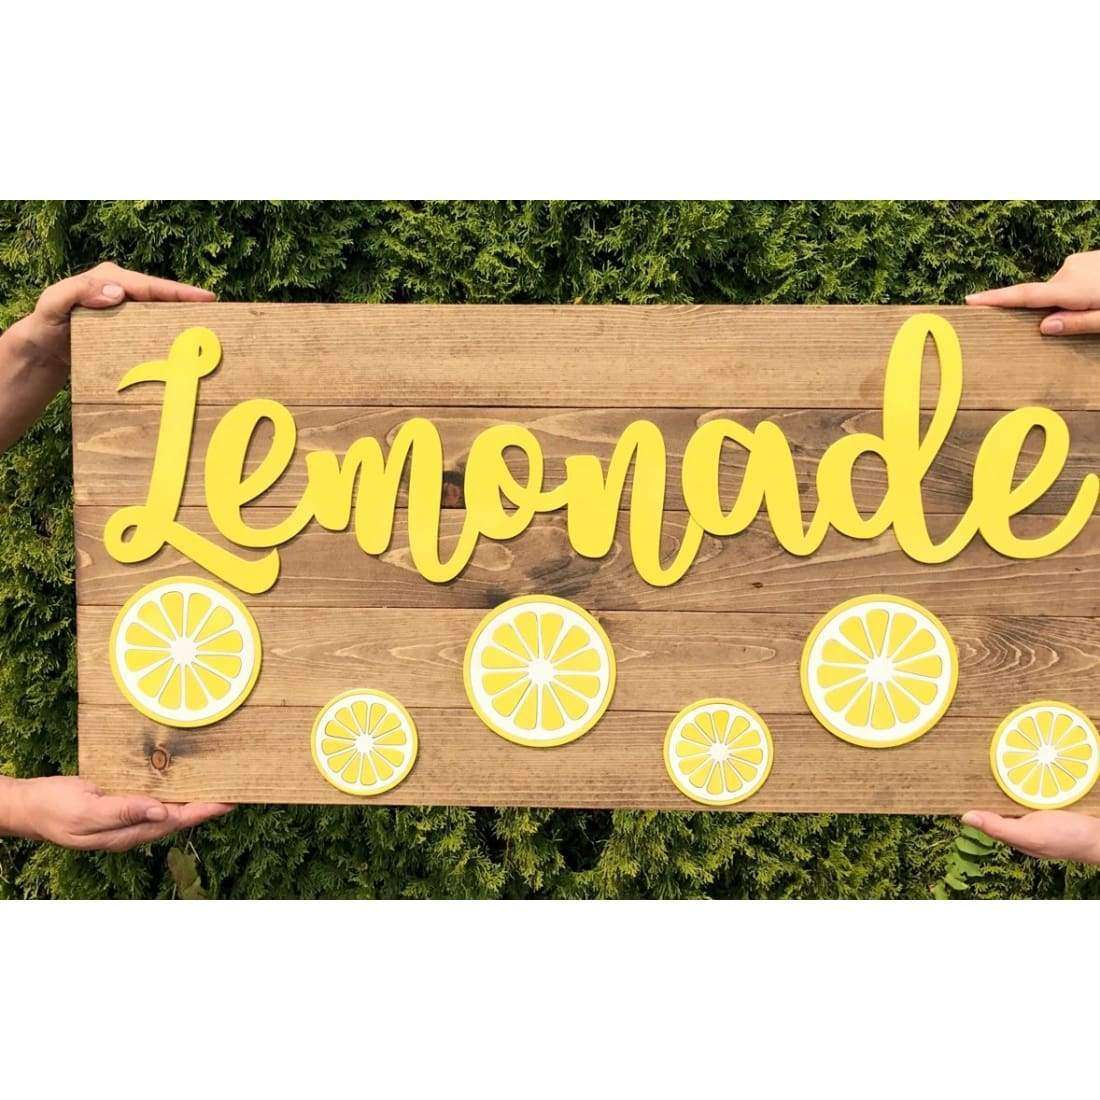 Fire Pigs Designs - Large Lemonade sign Free Shipping!